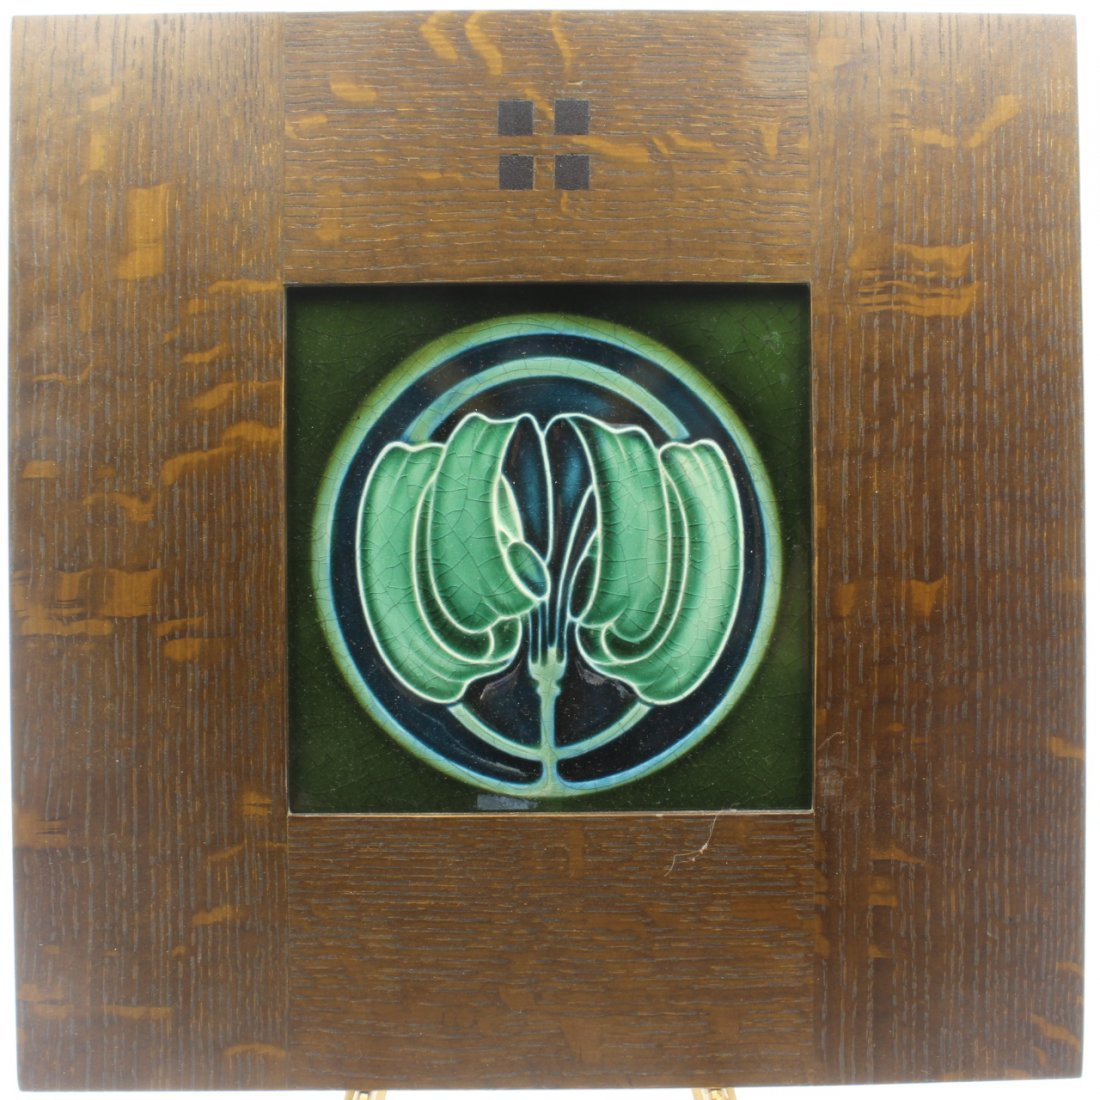 Art Nouveau Design Tile, C. 1908 - 2